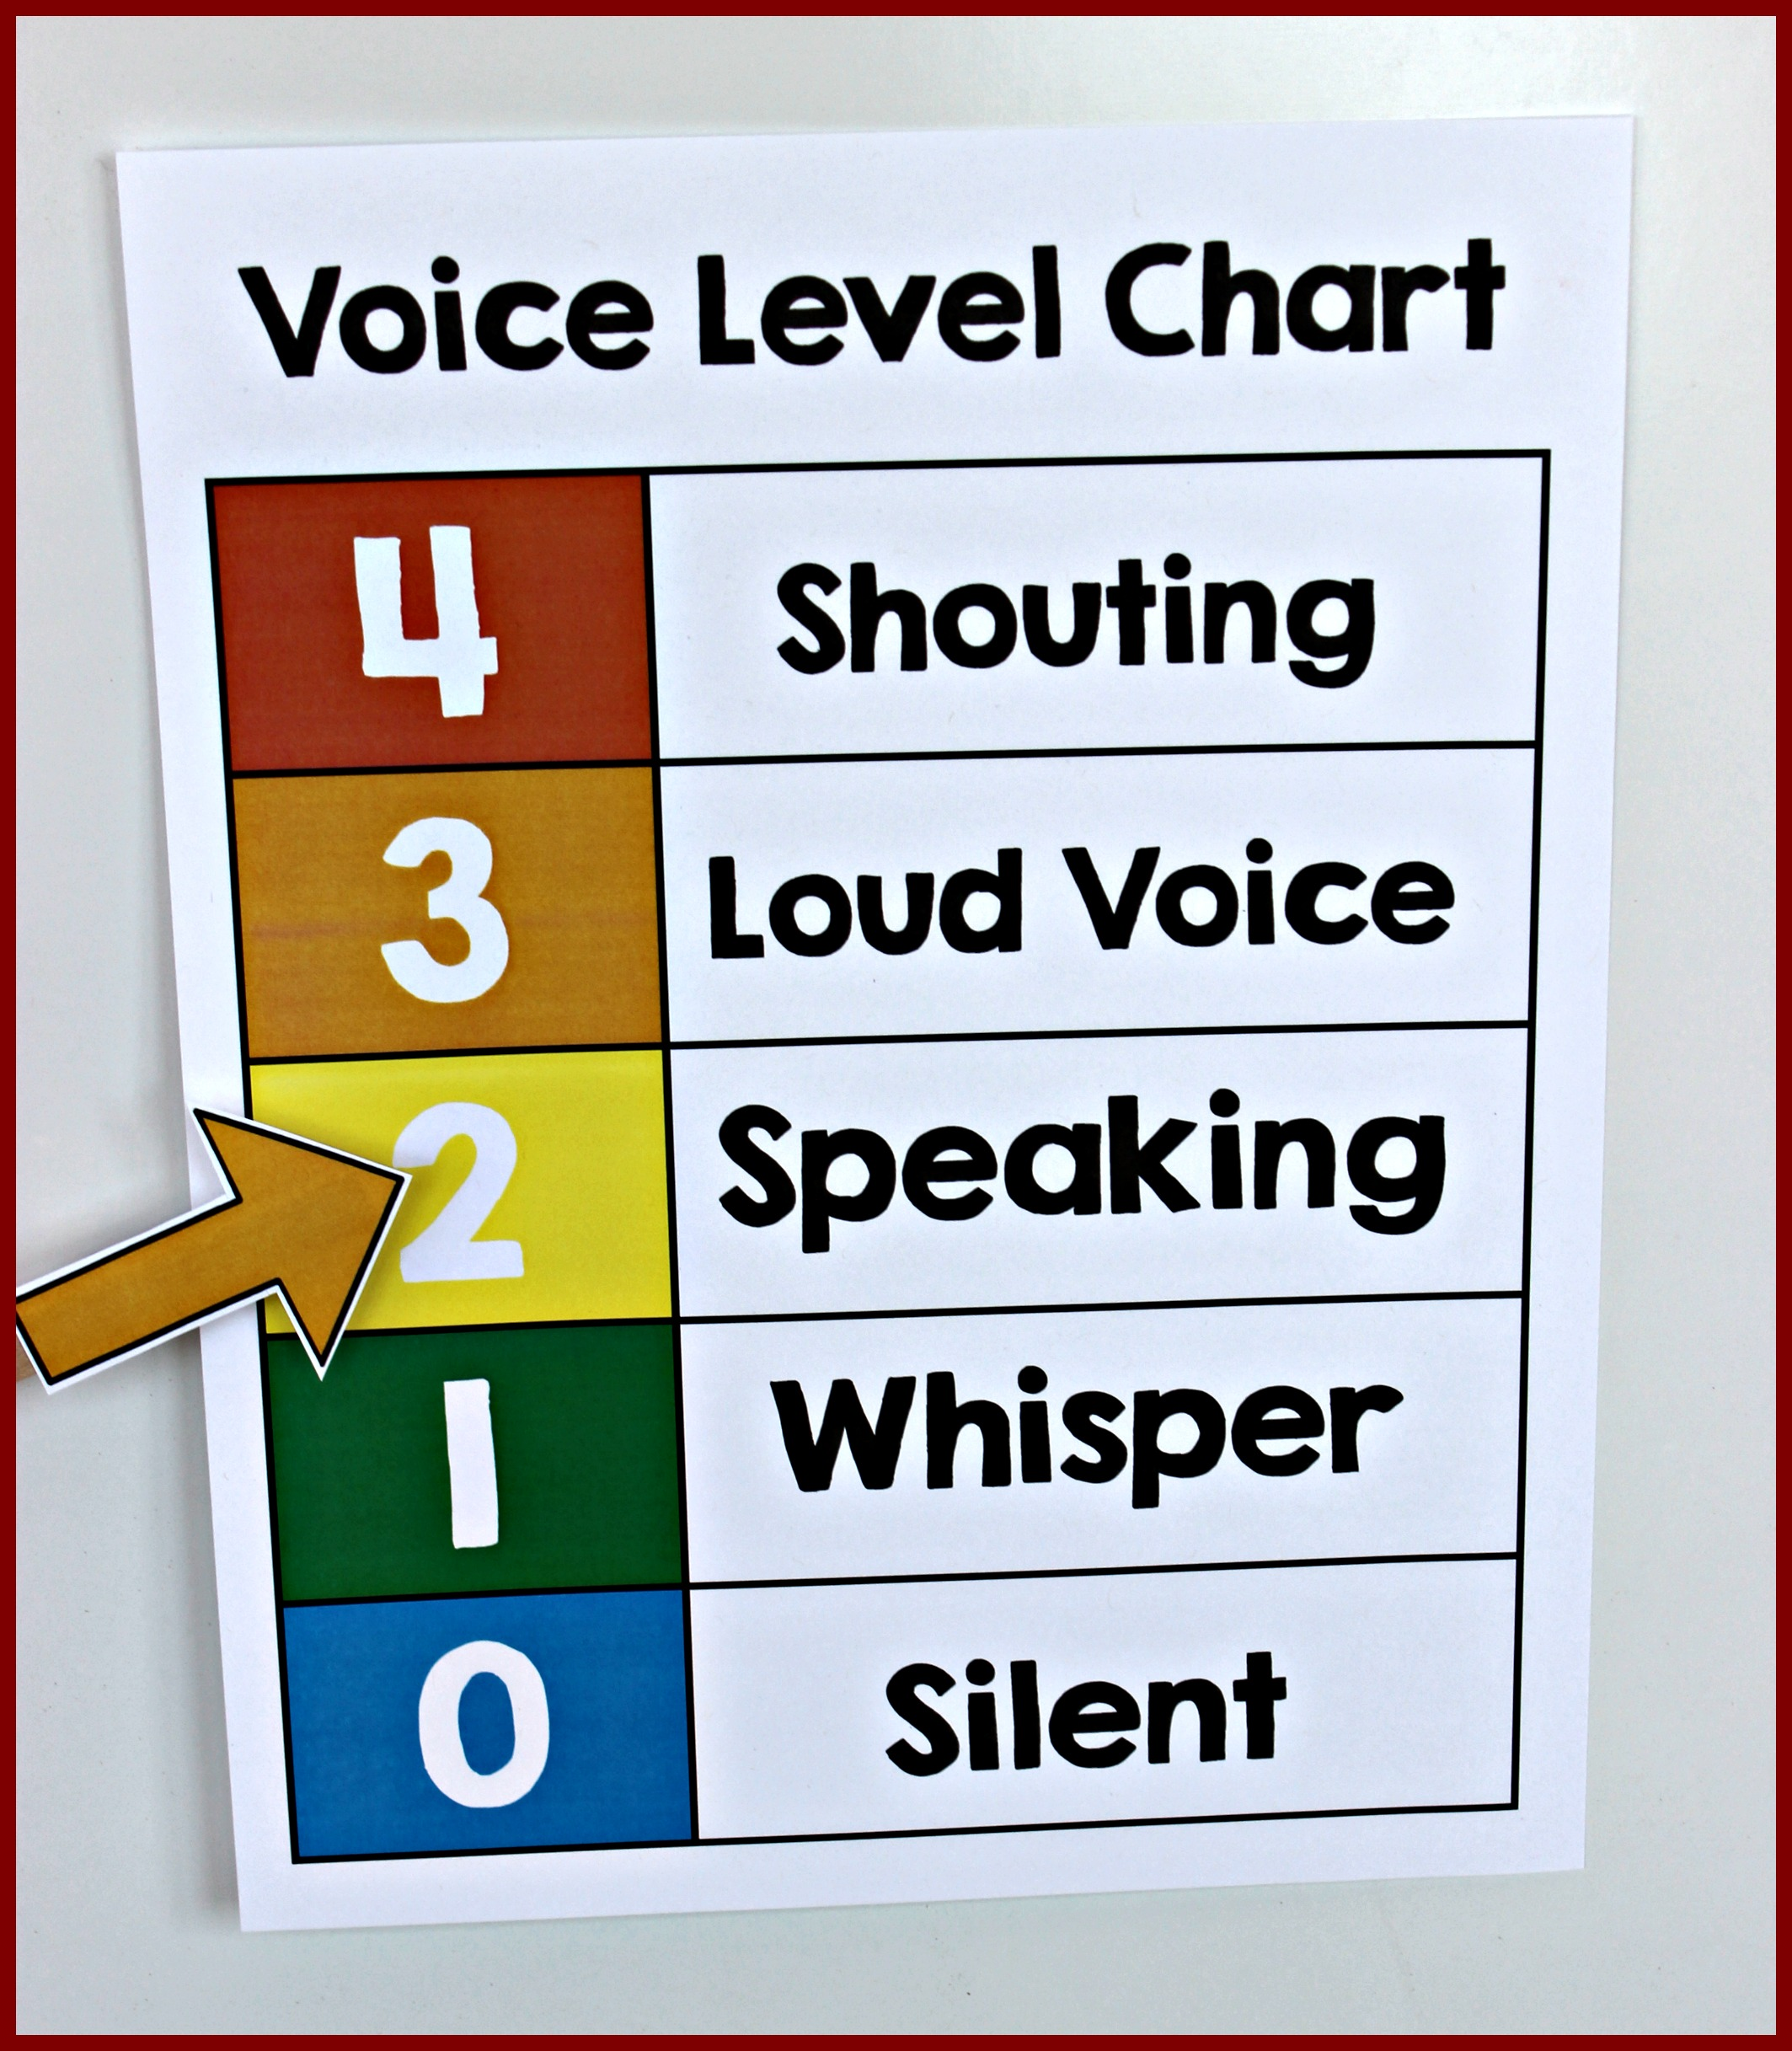 image about Voice Level Chart Printable titled Voice Point Chart FREEBIE! - Deliver Get Educate